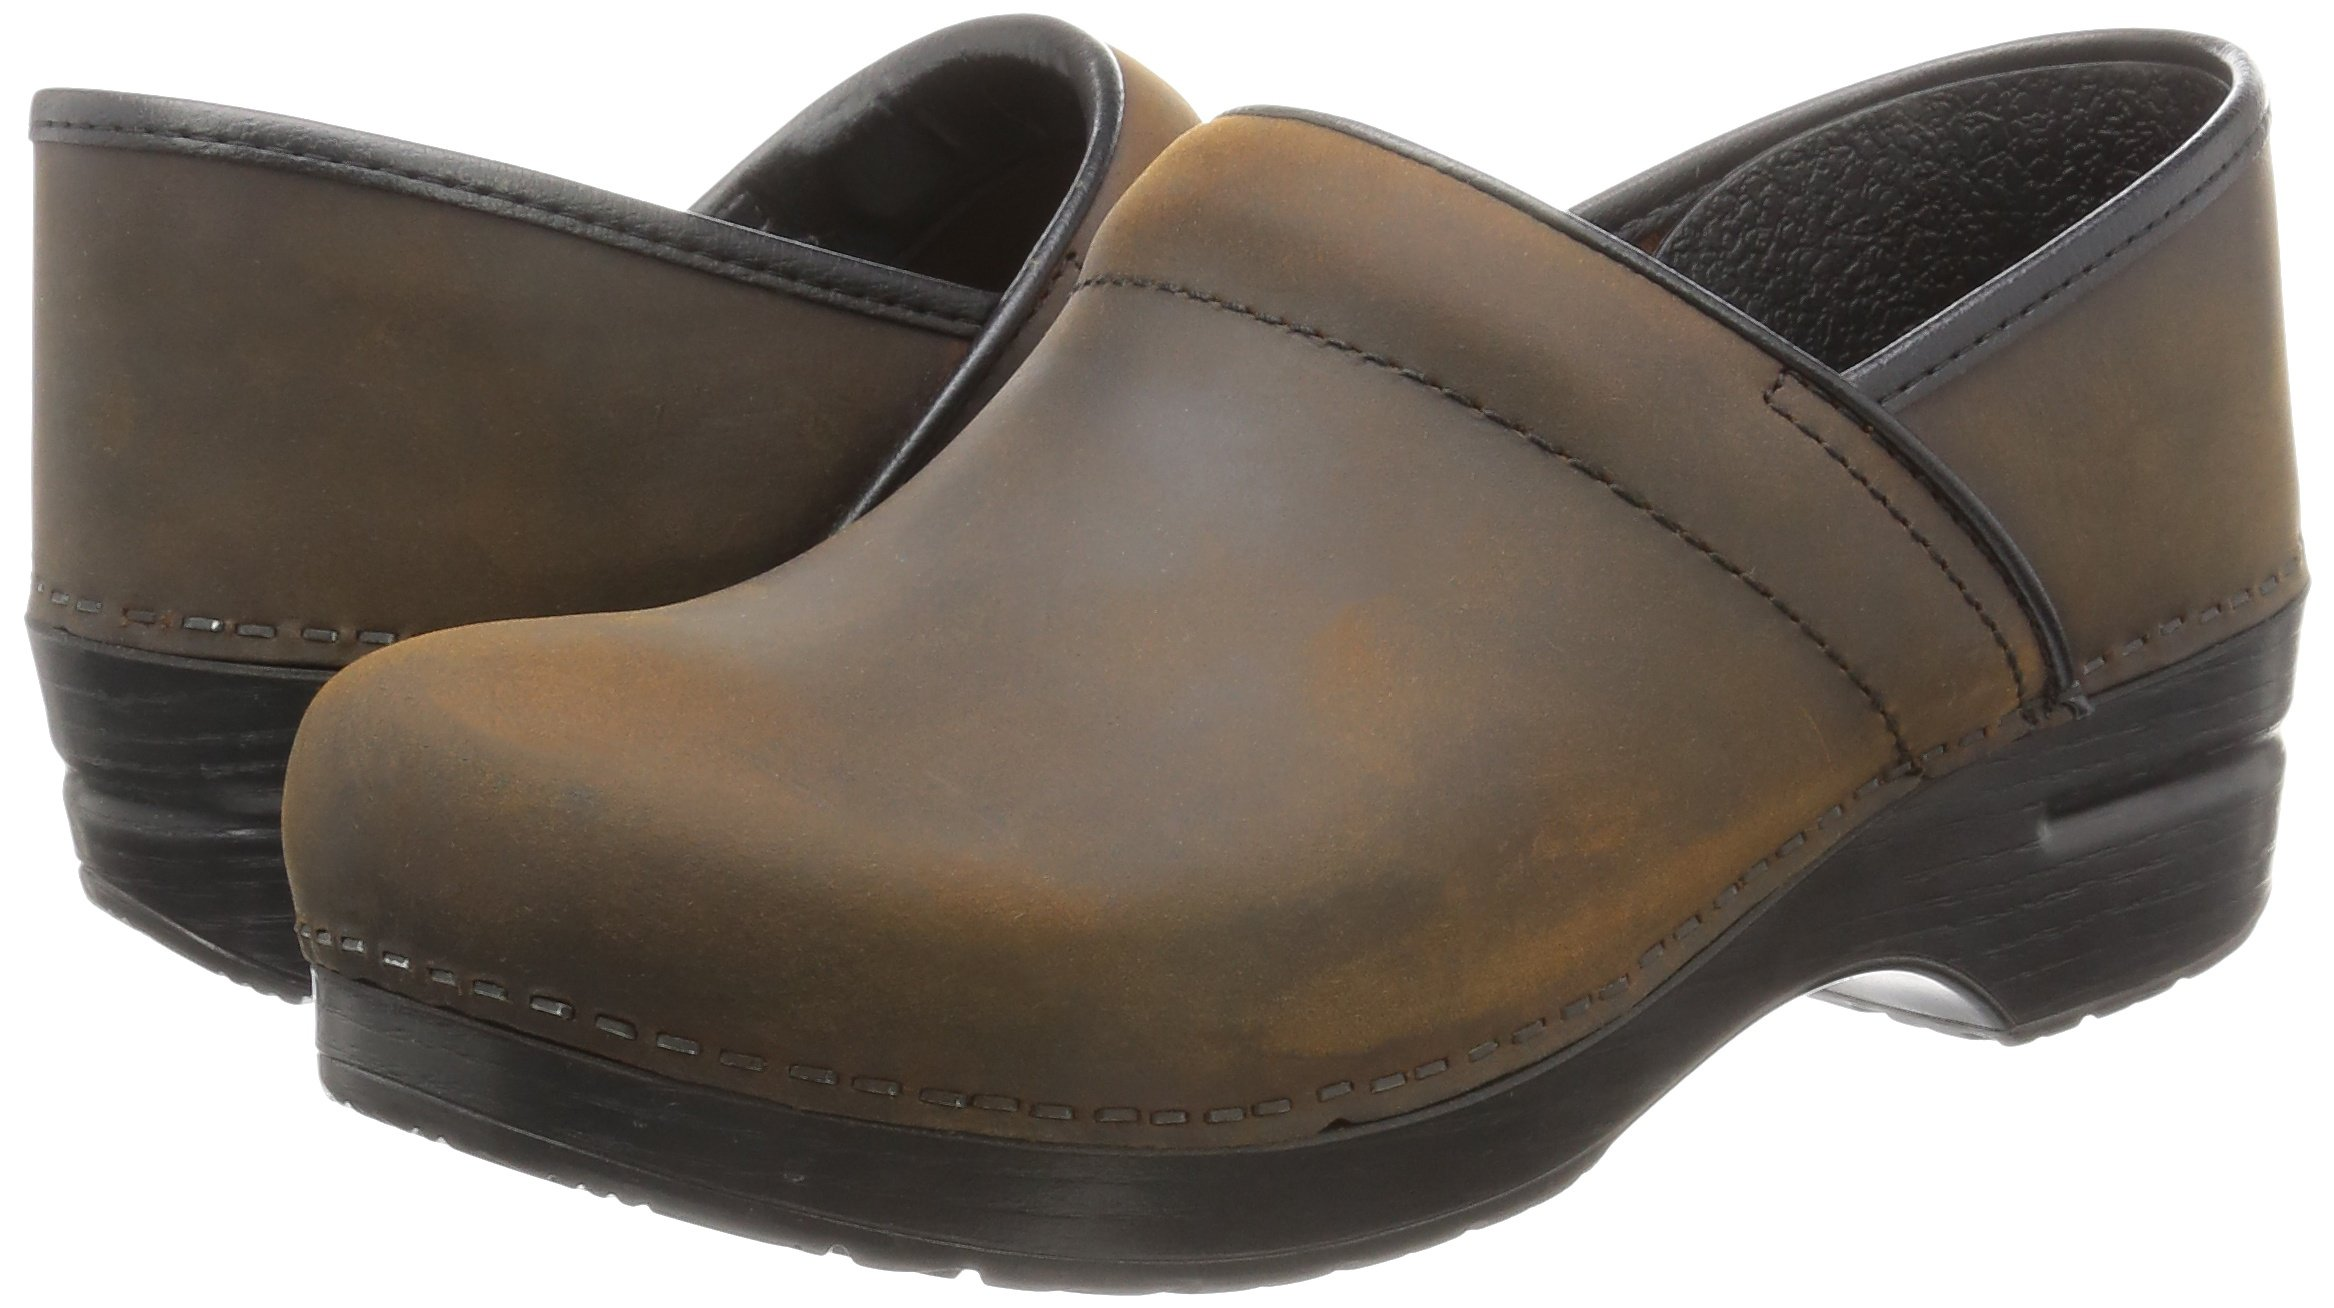 Dansko Women's Professional Oiled Leather Clog,Antique Brown/Black,35 EU / 4.5-5 B(M) US by Dansko (Image #6)